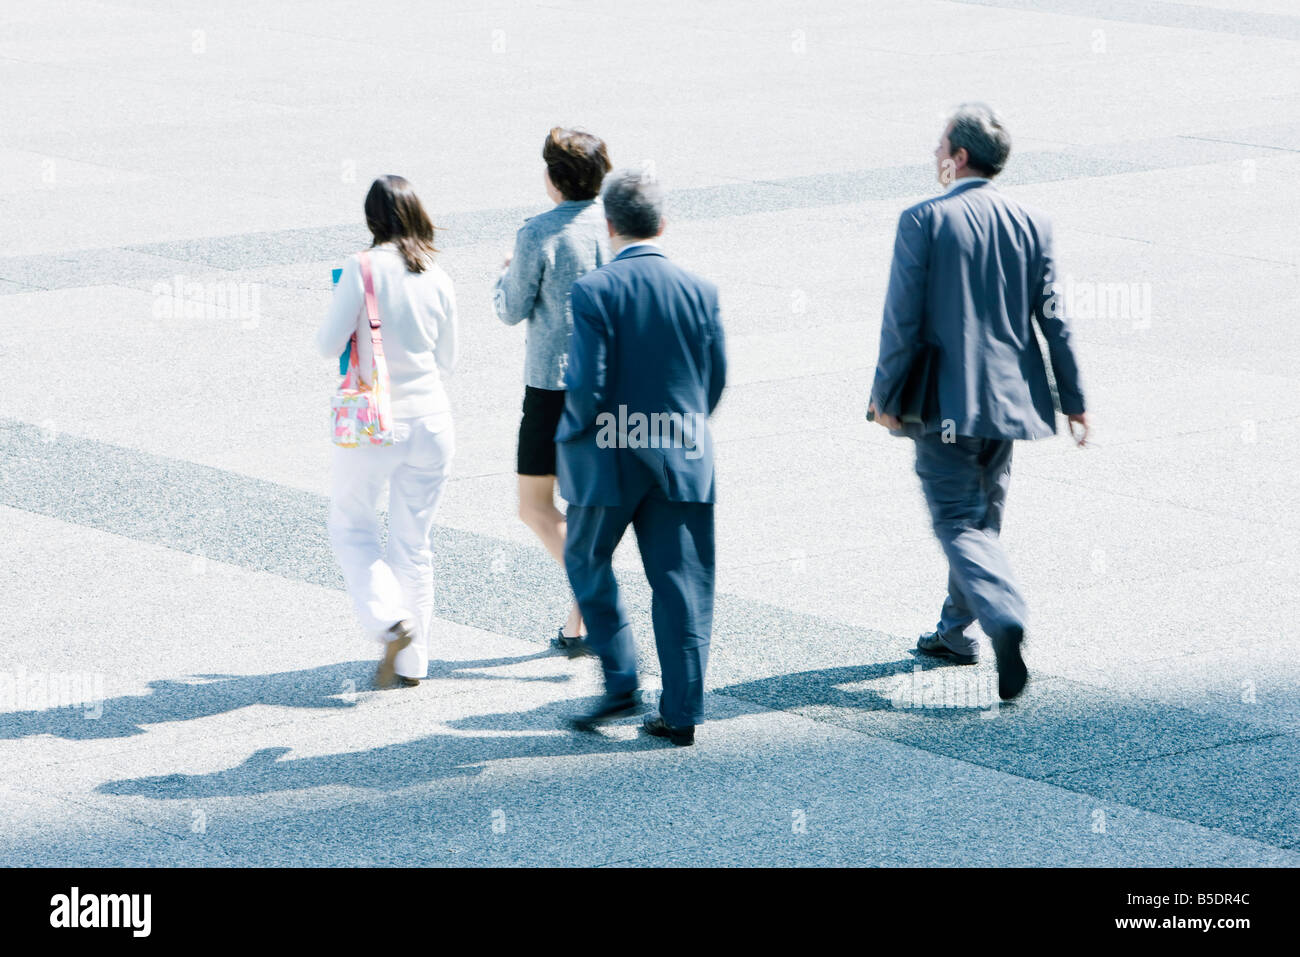 Pedestrians walking across public square - Stock Image